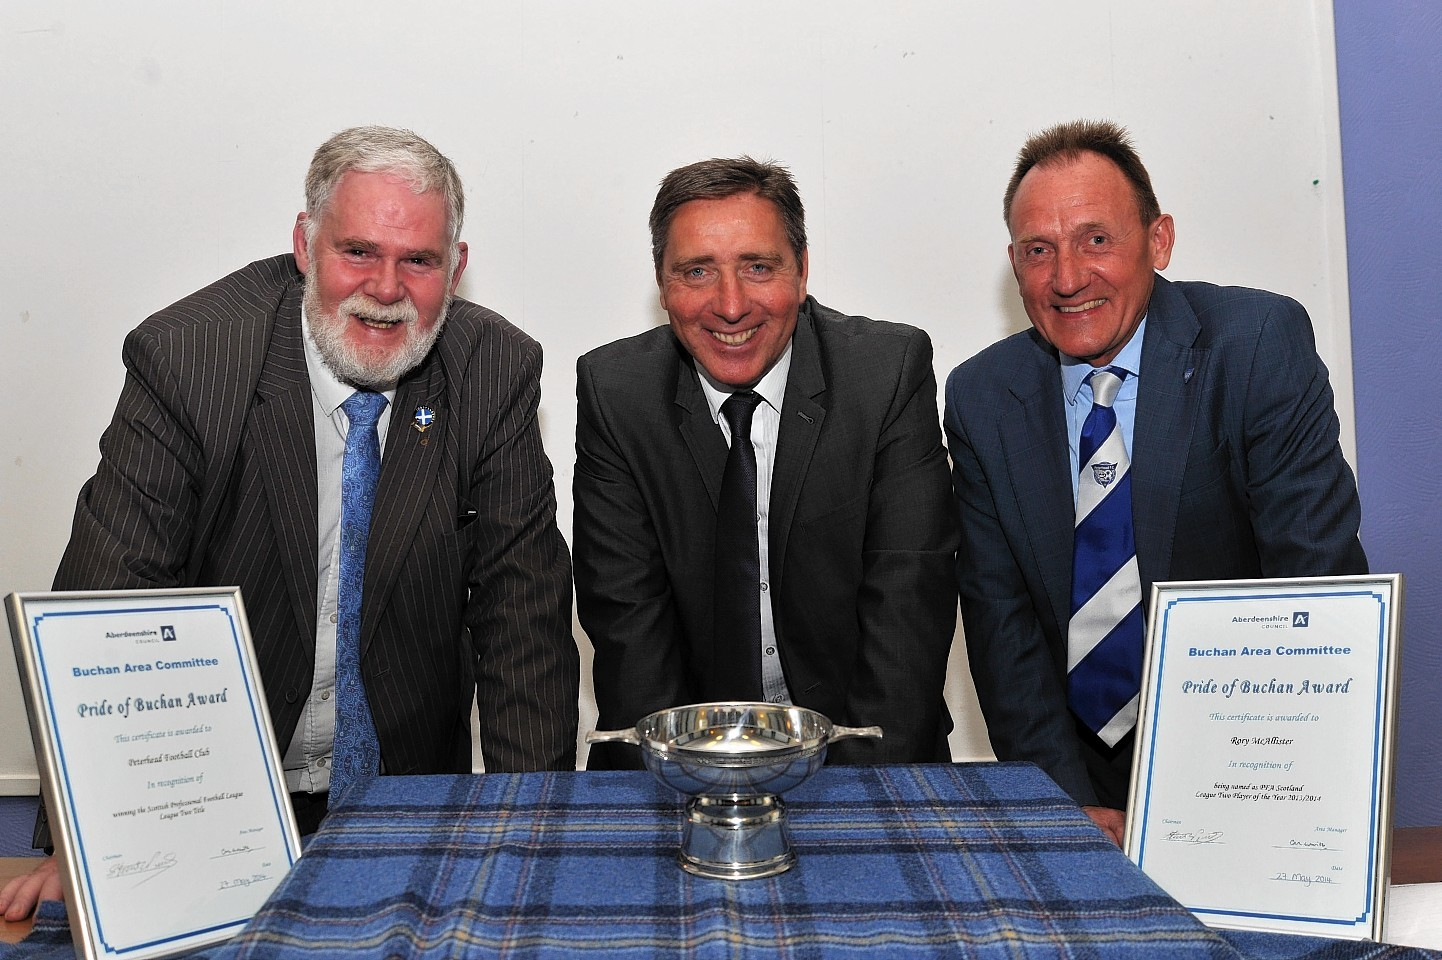 Pride of Buchan award was given to Peterhead FC